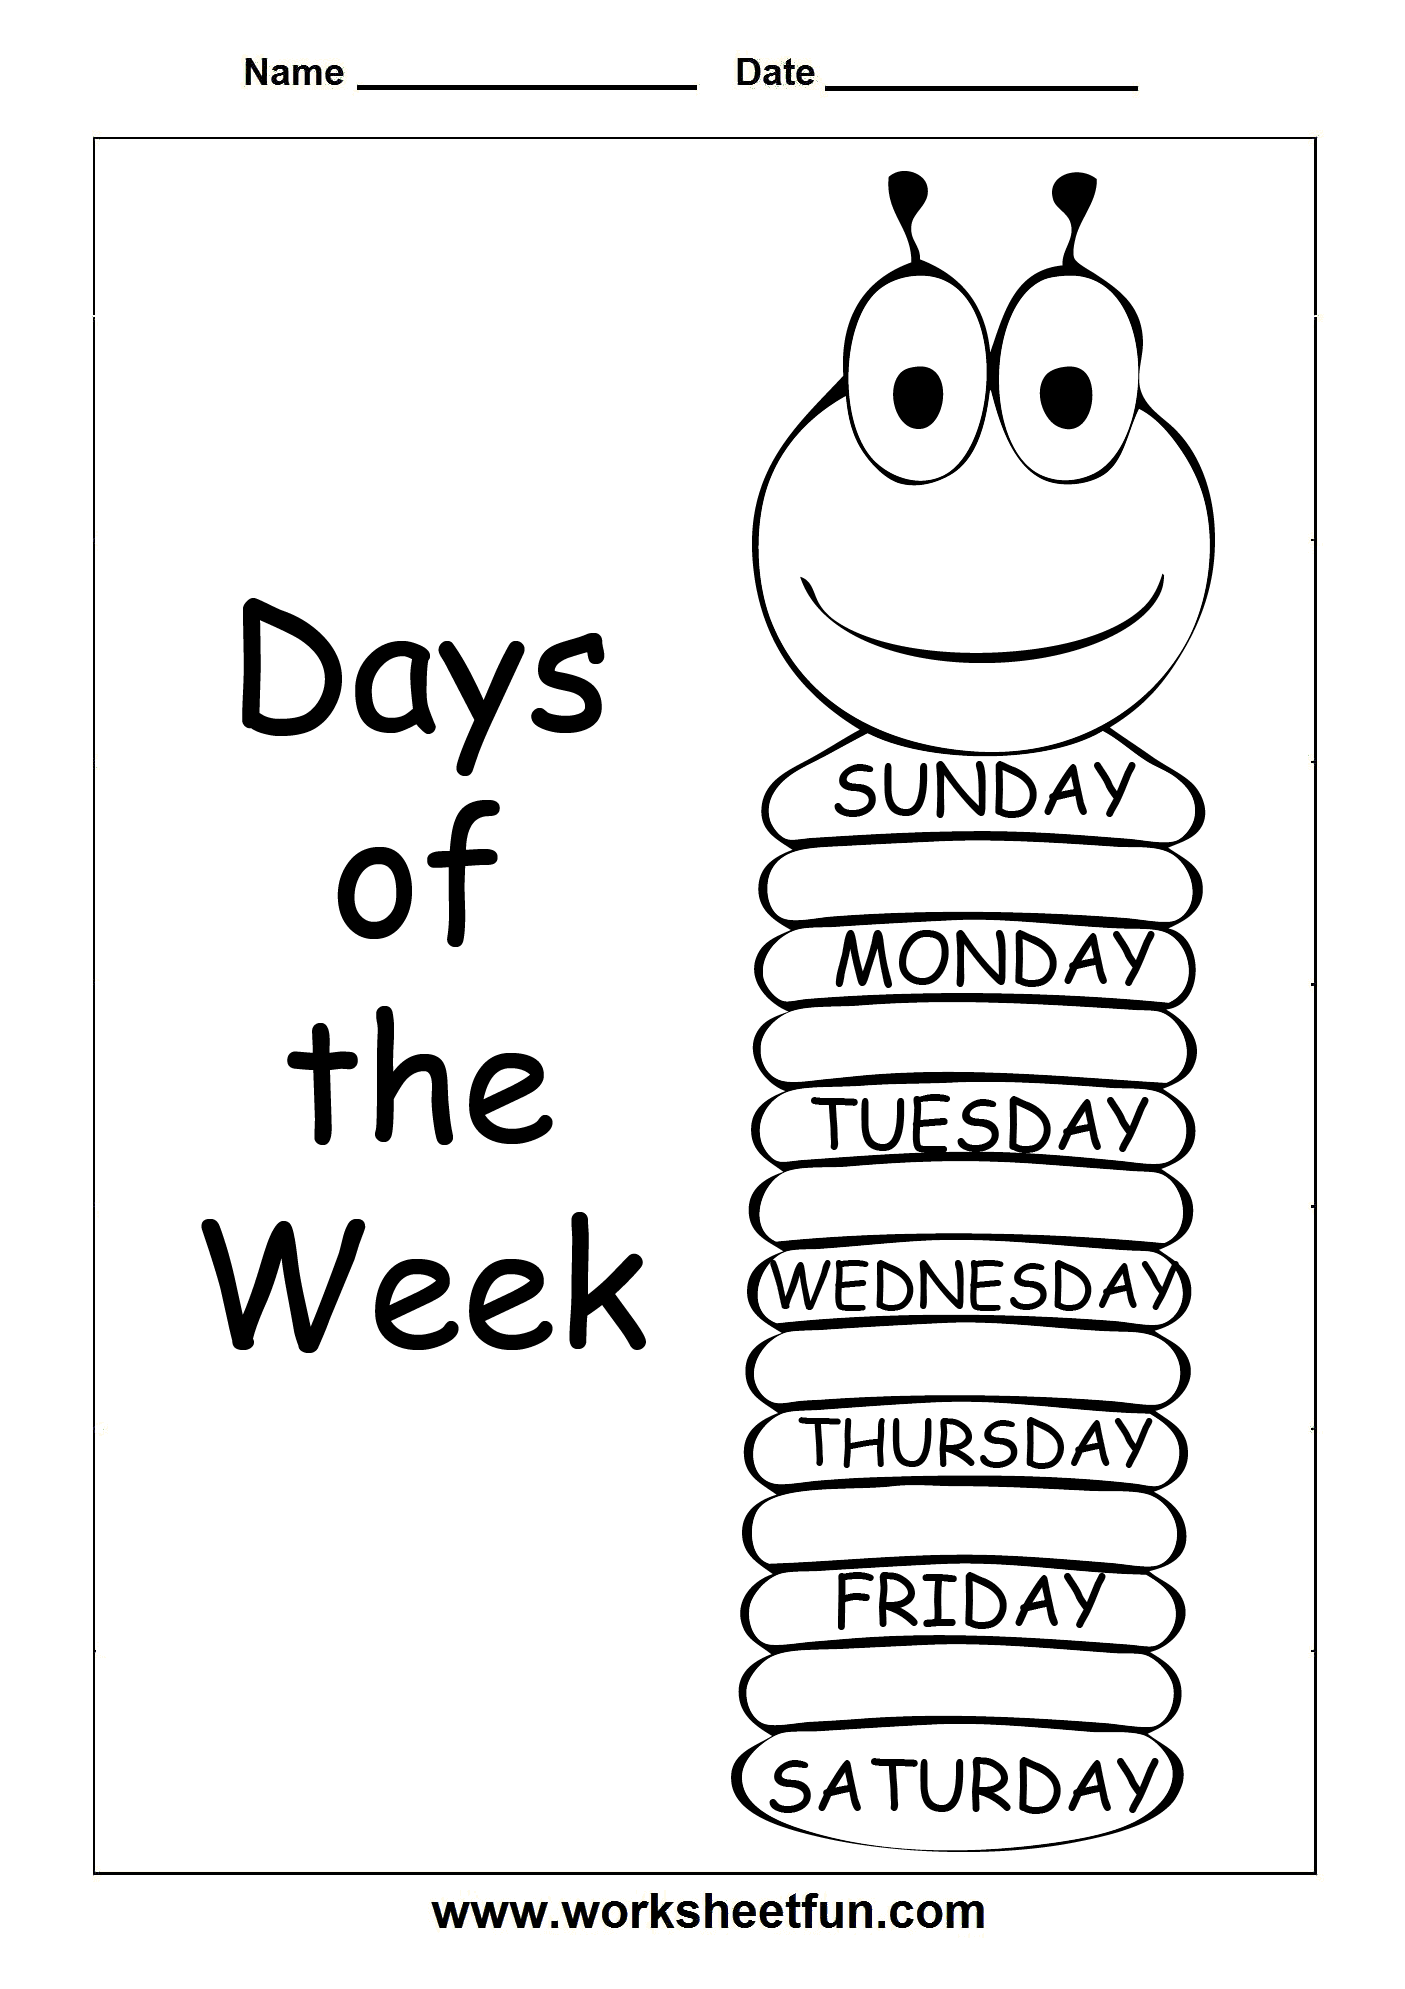 Days Of The Week 3 Worksheets Free Printable